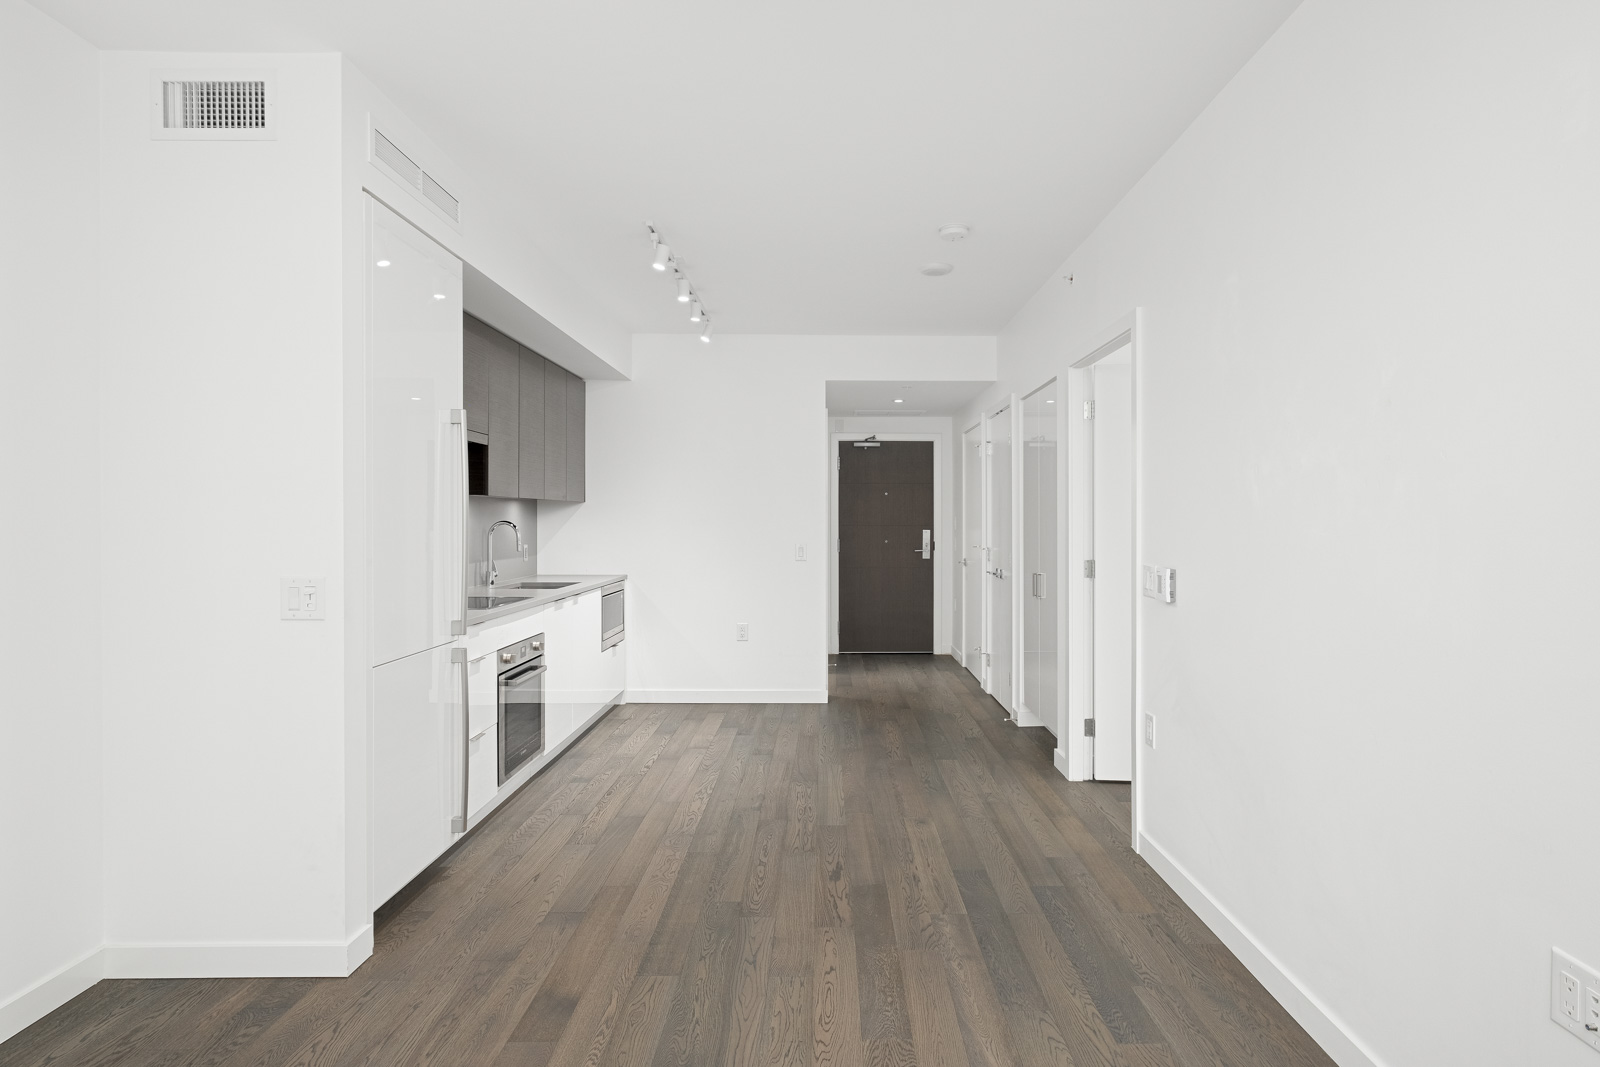 rental condo in navio building on pullman porter street in false creek olympic village managed by birds nest properties